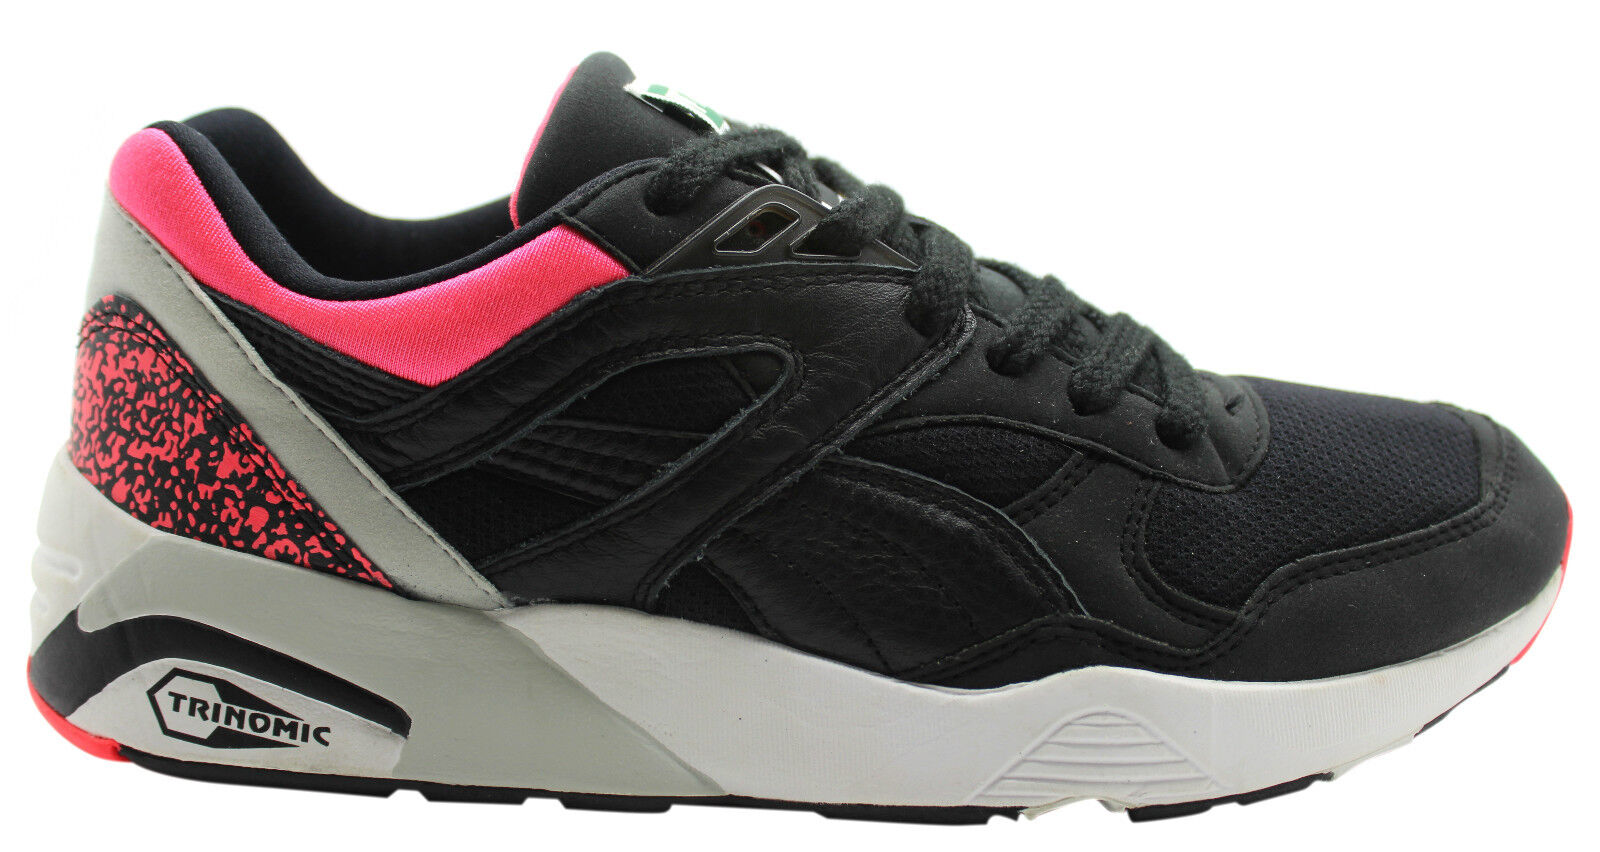 Puma Trinomic R698 OG 93 Lace Up Synthetic Mens Trainers Black Pink ... 1fb52fcd7